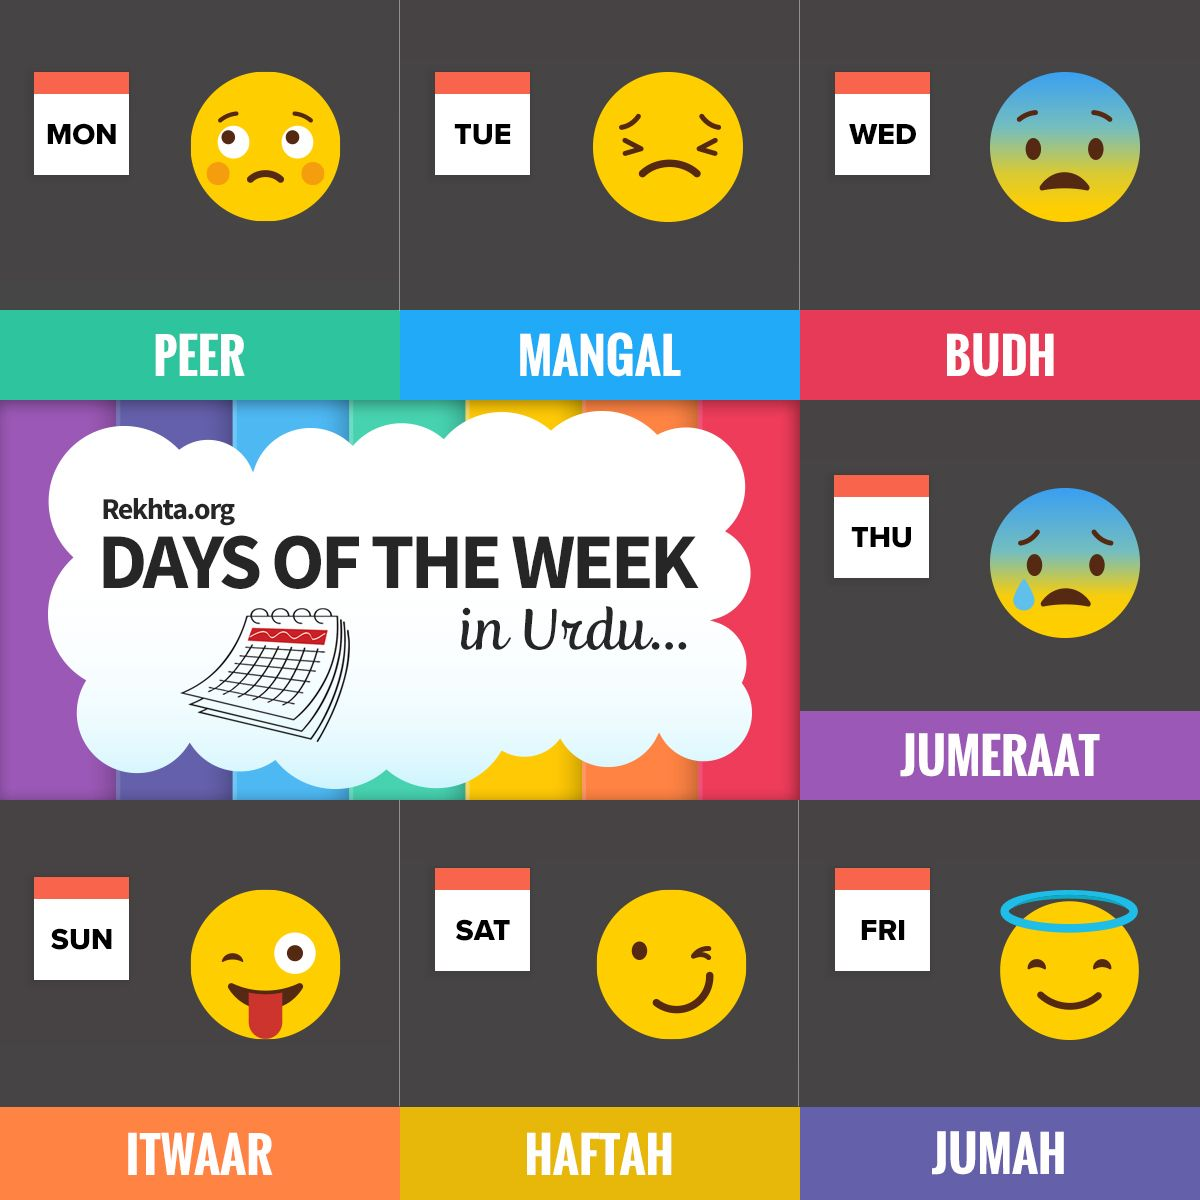 Days of the Week in Urdu Urdu love words, Urdu words